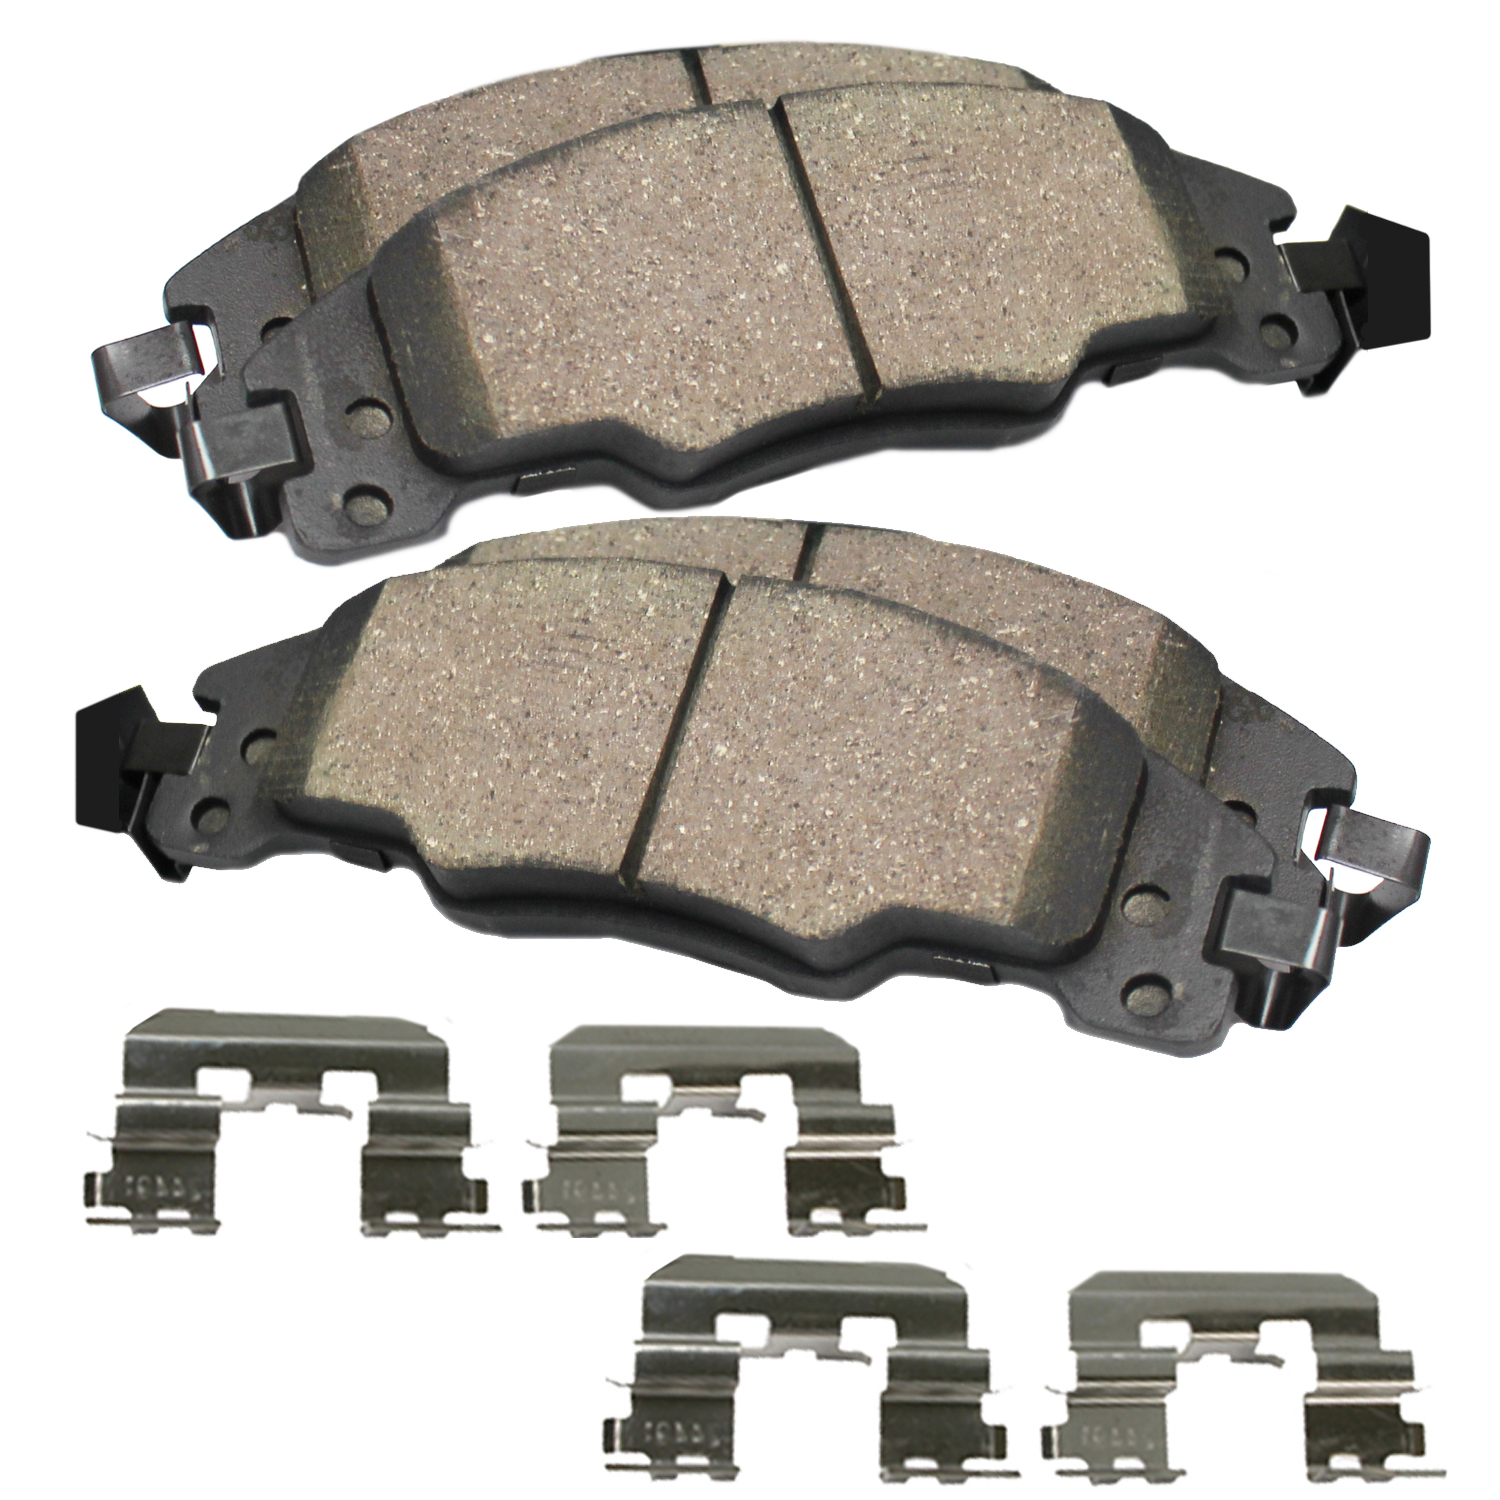 Rear Ceramic Brake Pads w/Hardware Kit for 2010-2016 Hyundai Genesis Coupe - [2012-2015 Tesla S]